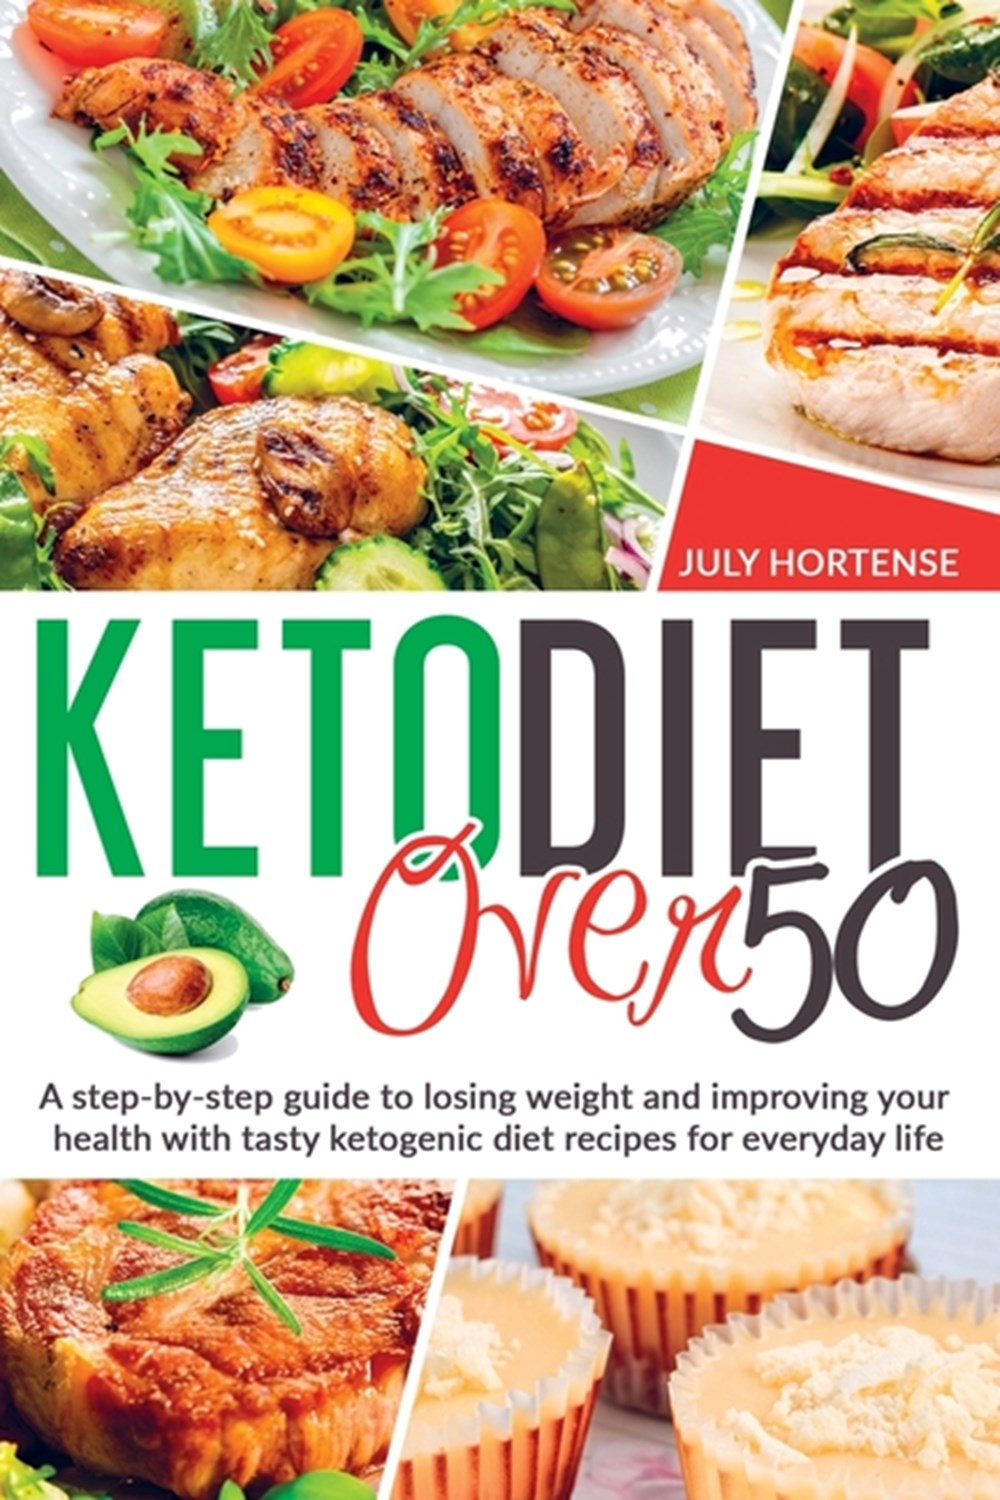 Keto Diet Over 50 A step-by-step guide to losing weight and improving your health with tasty ketogen